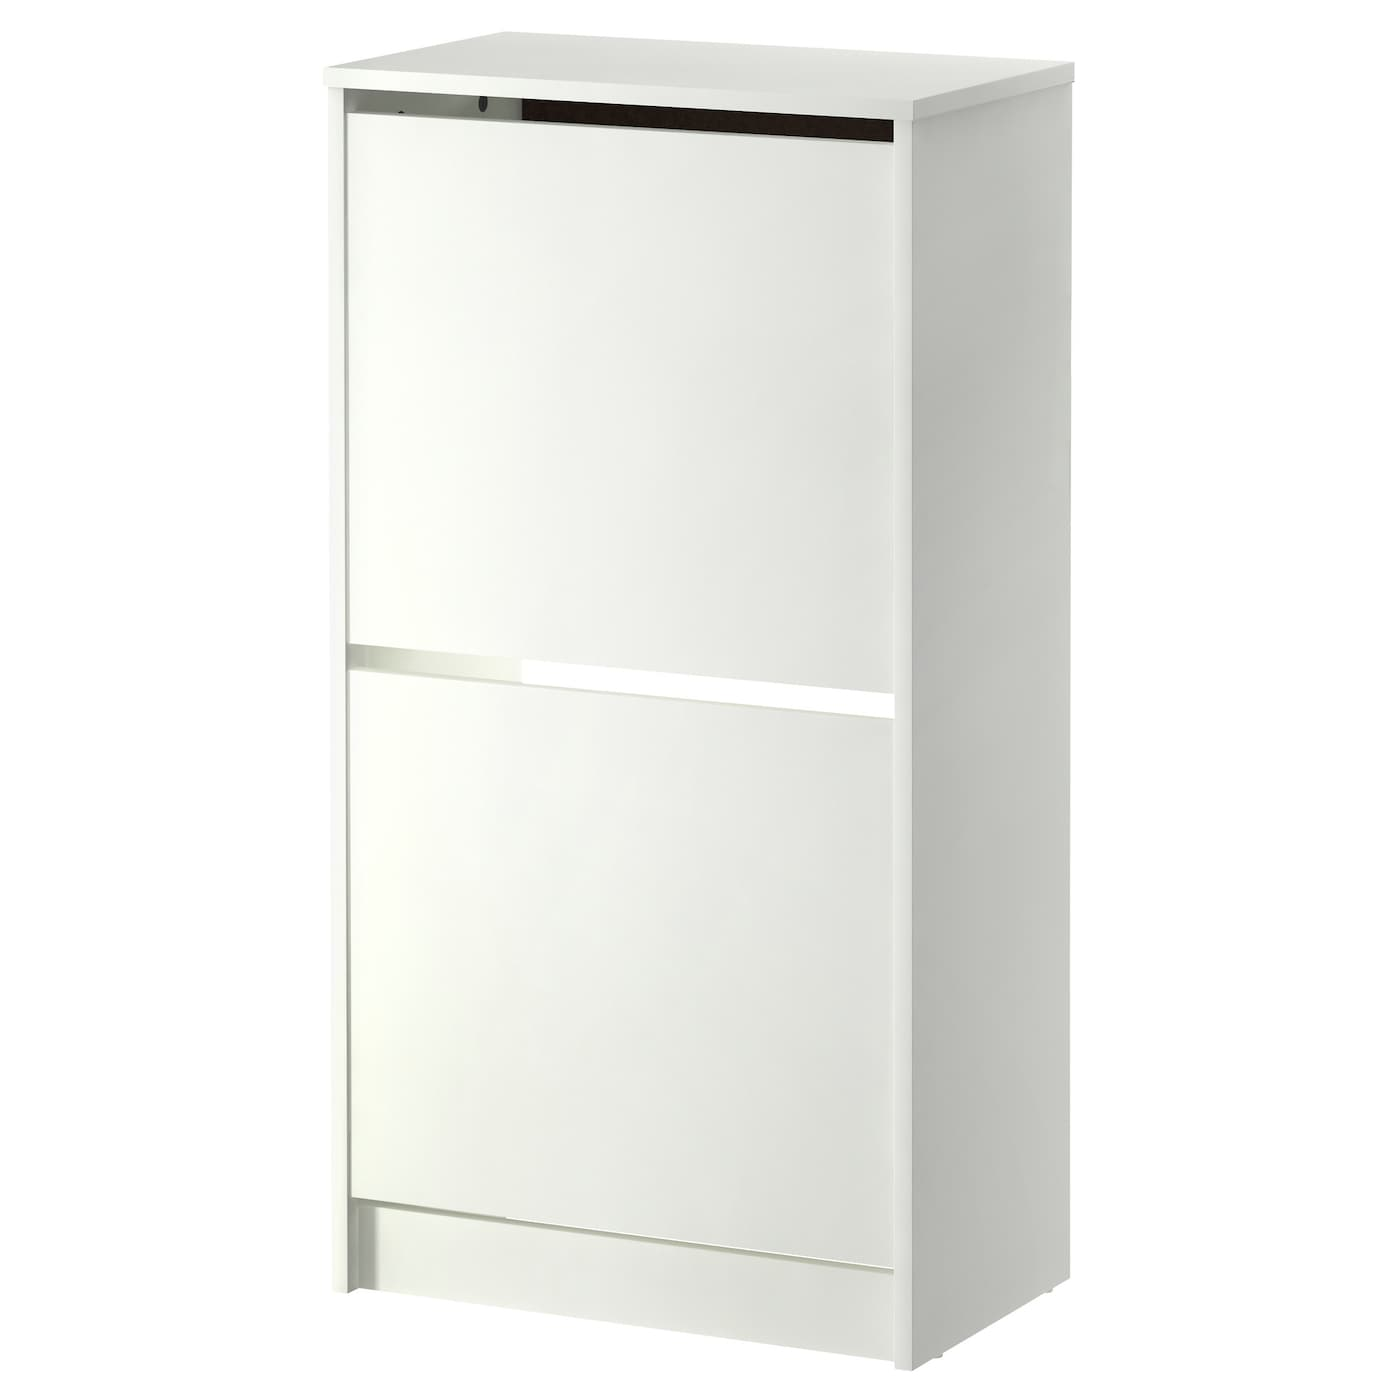 IKEA BISSA shoe cabinet with 2 compartments